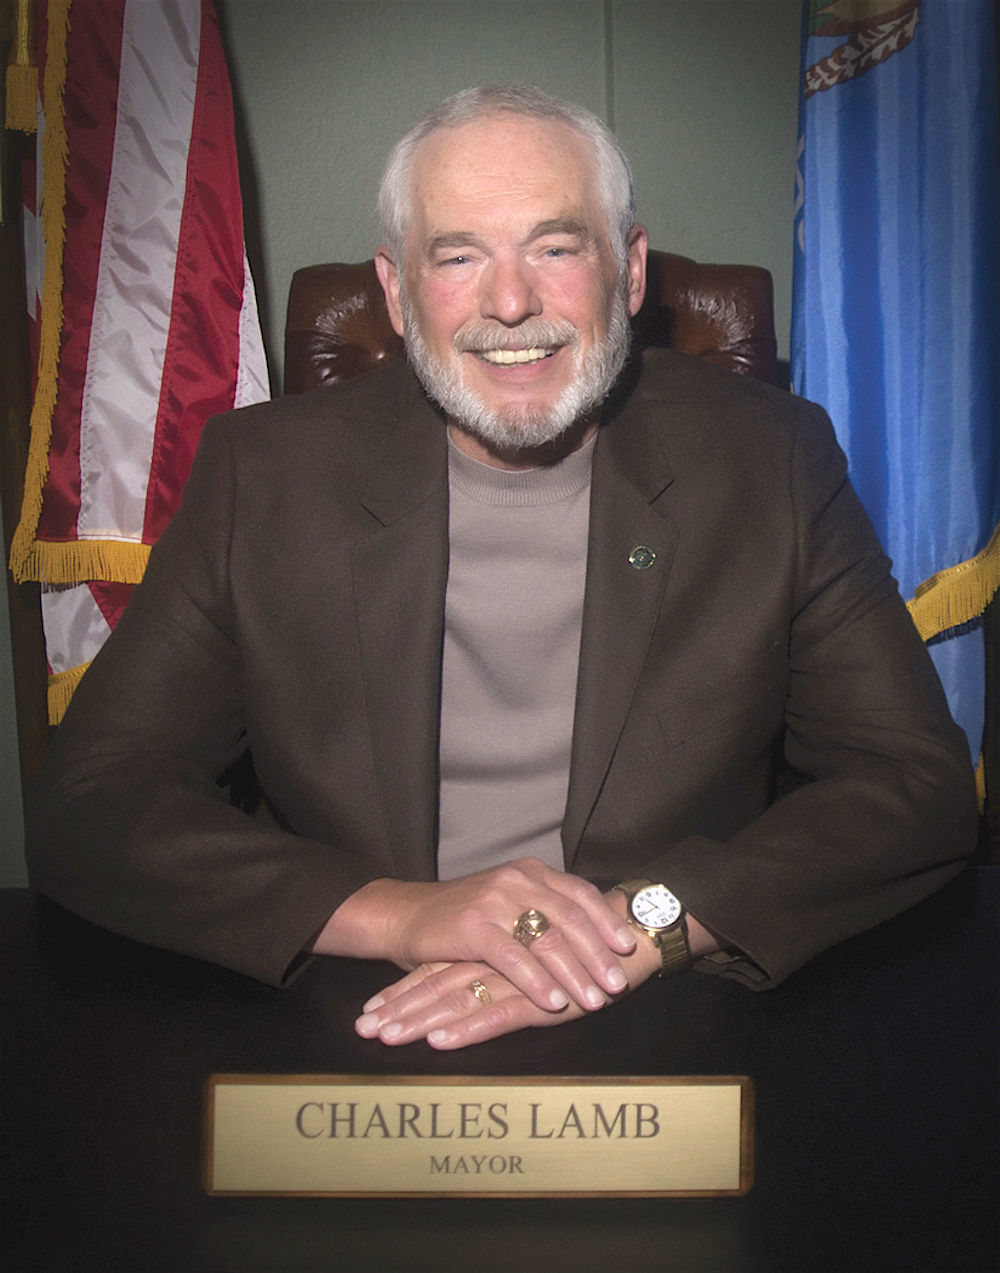 Deceased mayor of Edmond, Oklahoma